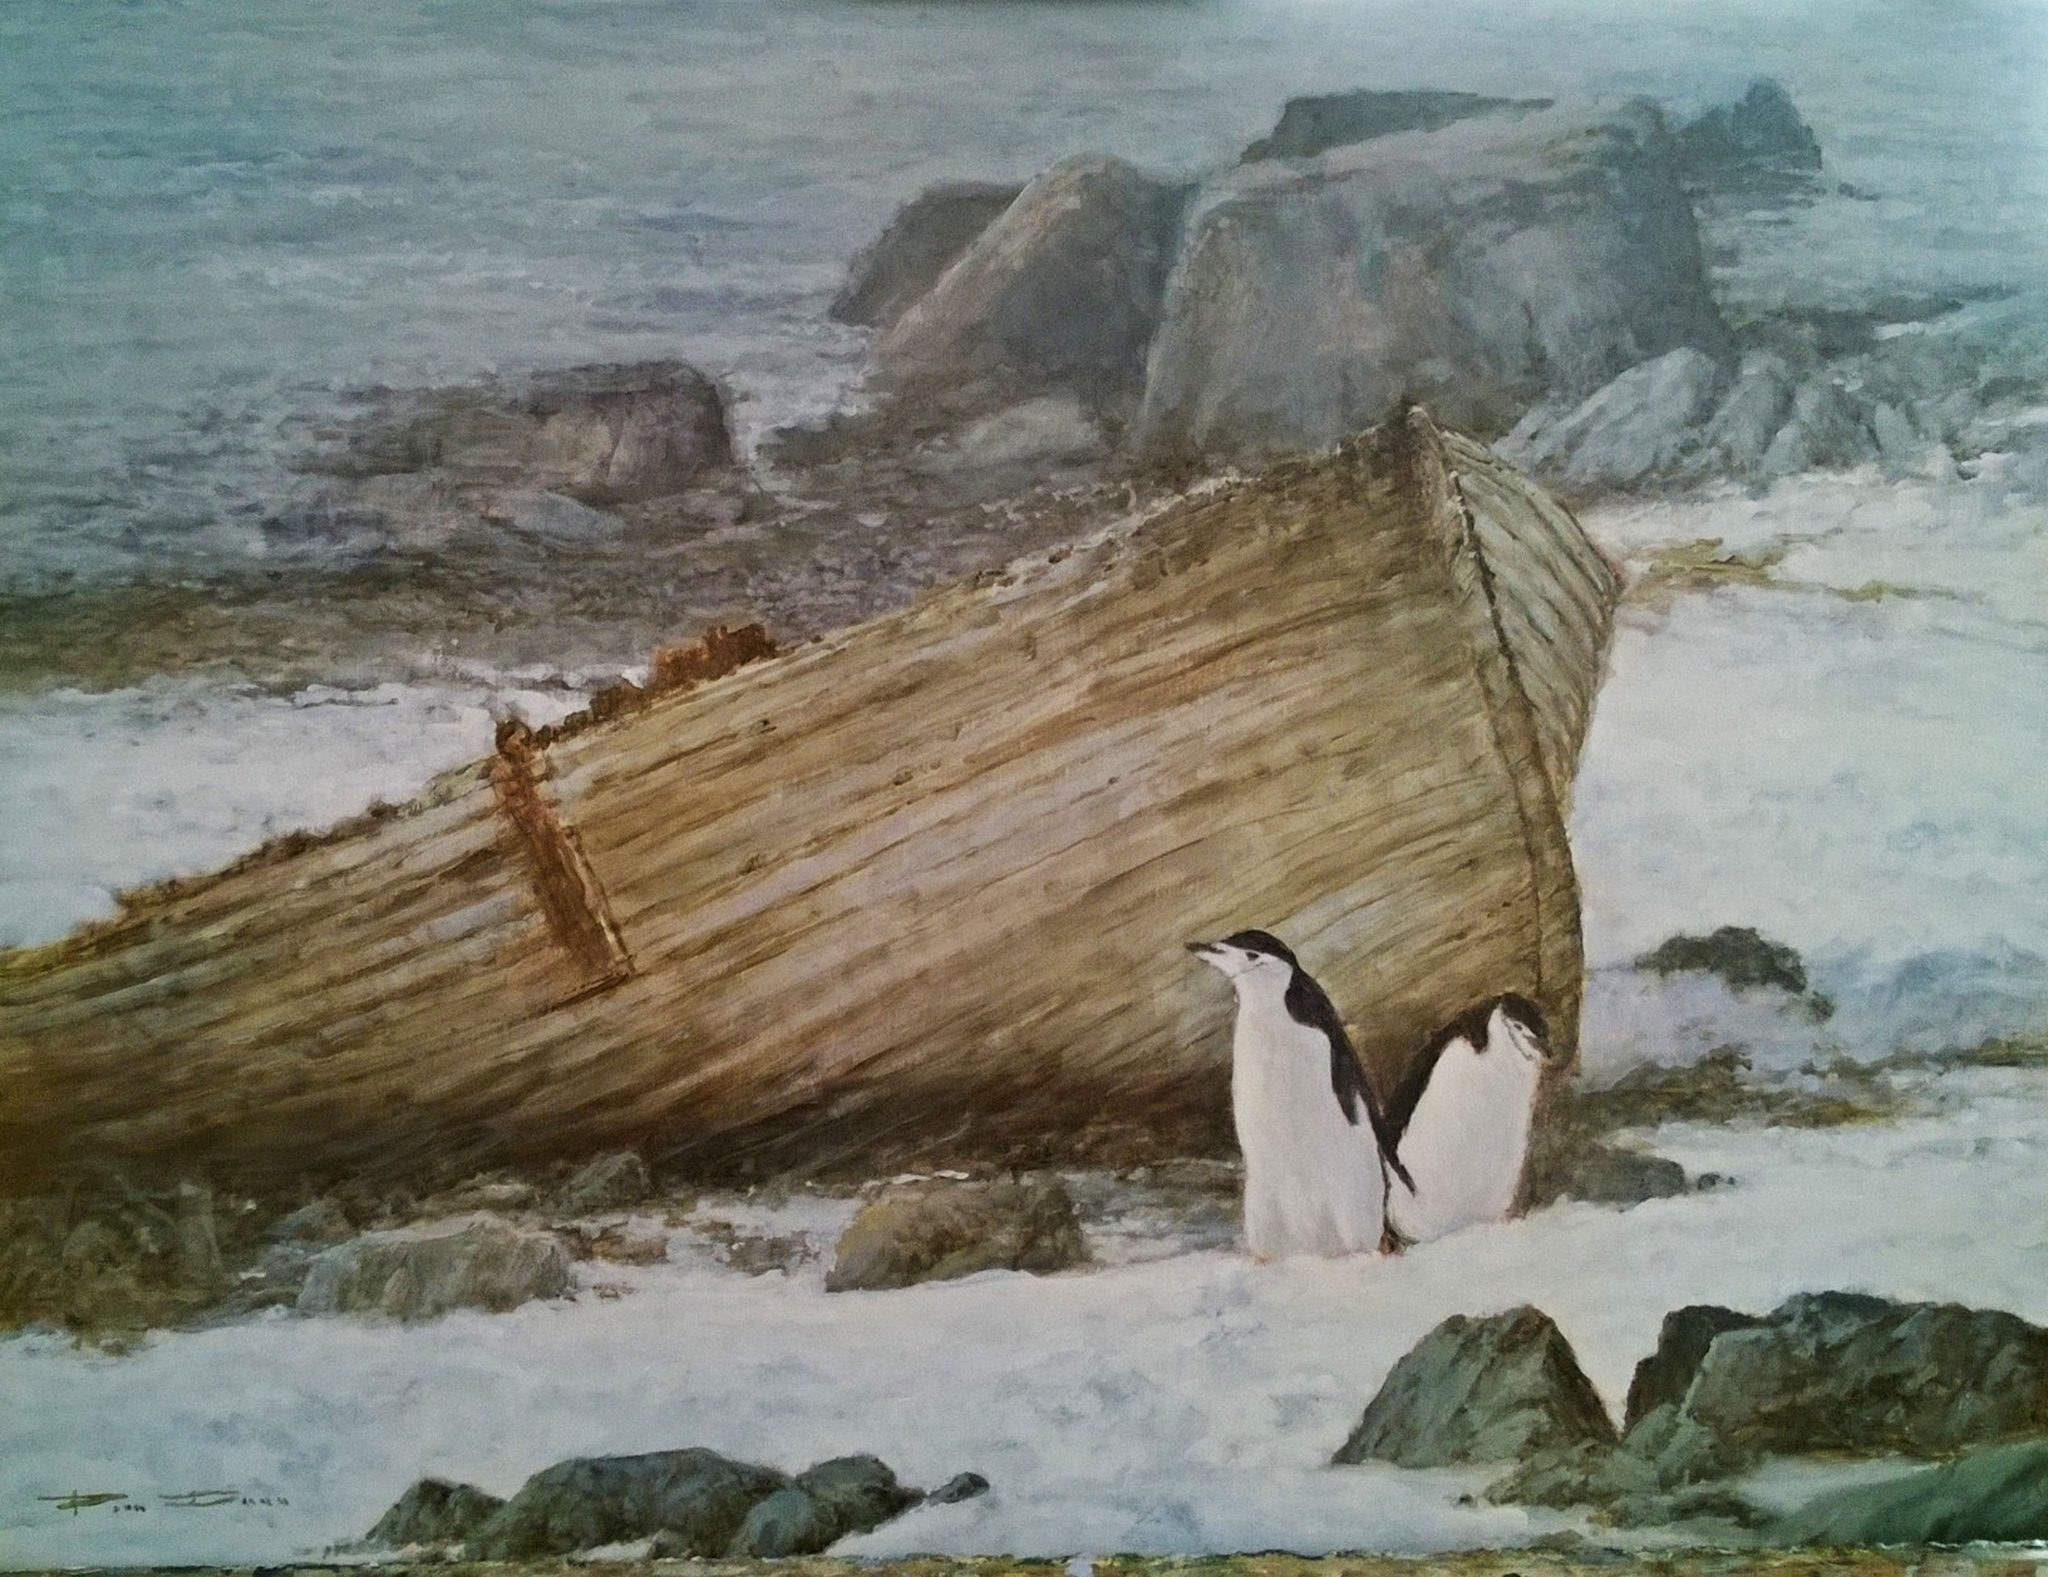 Penguins by the Old Boat